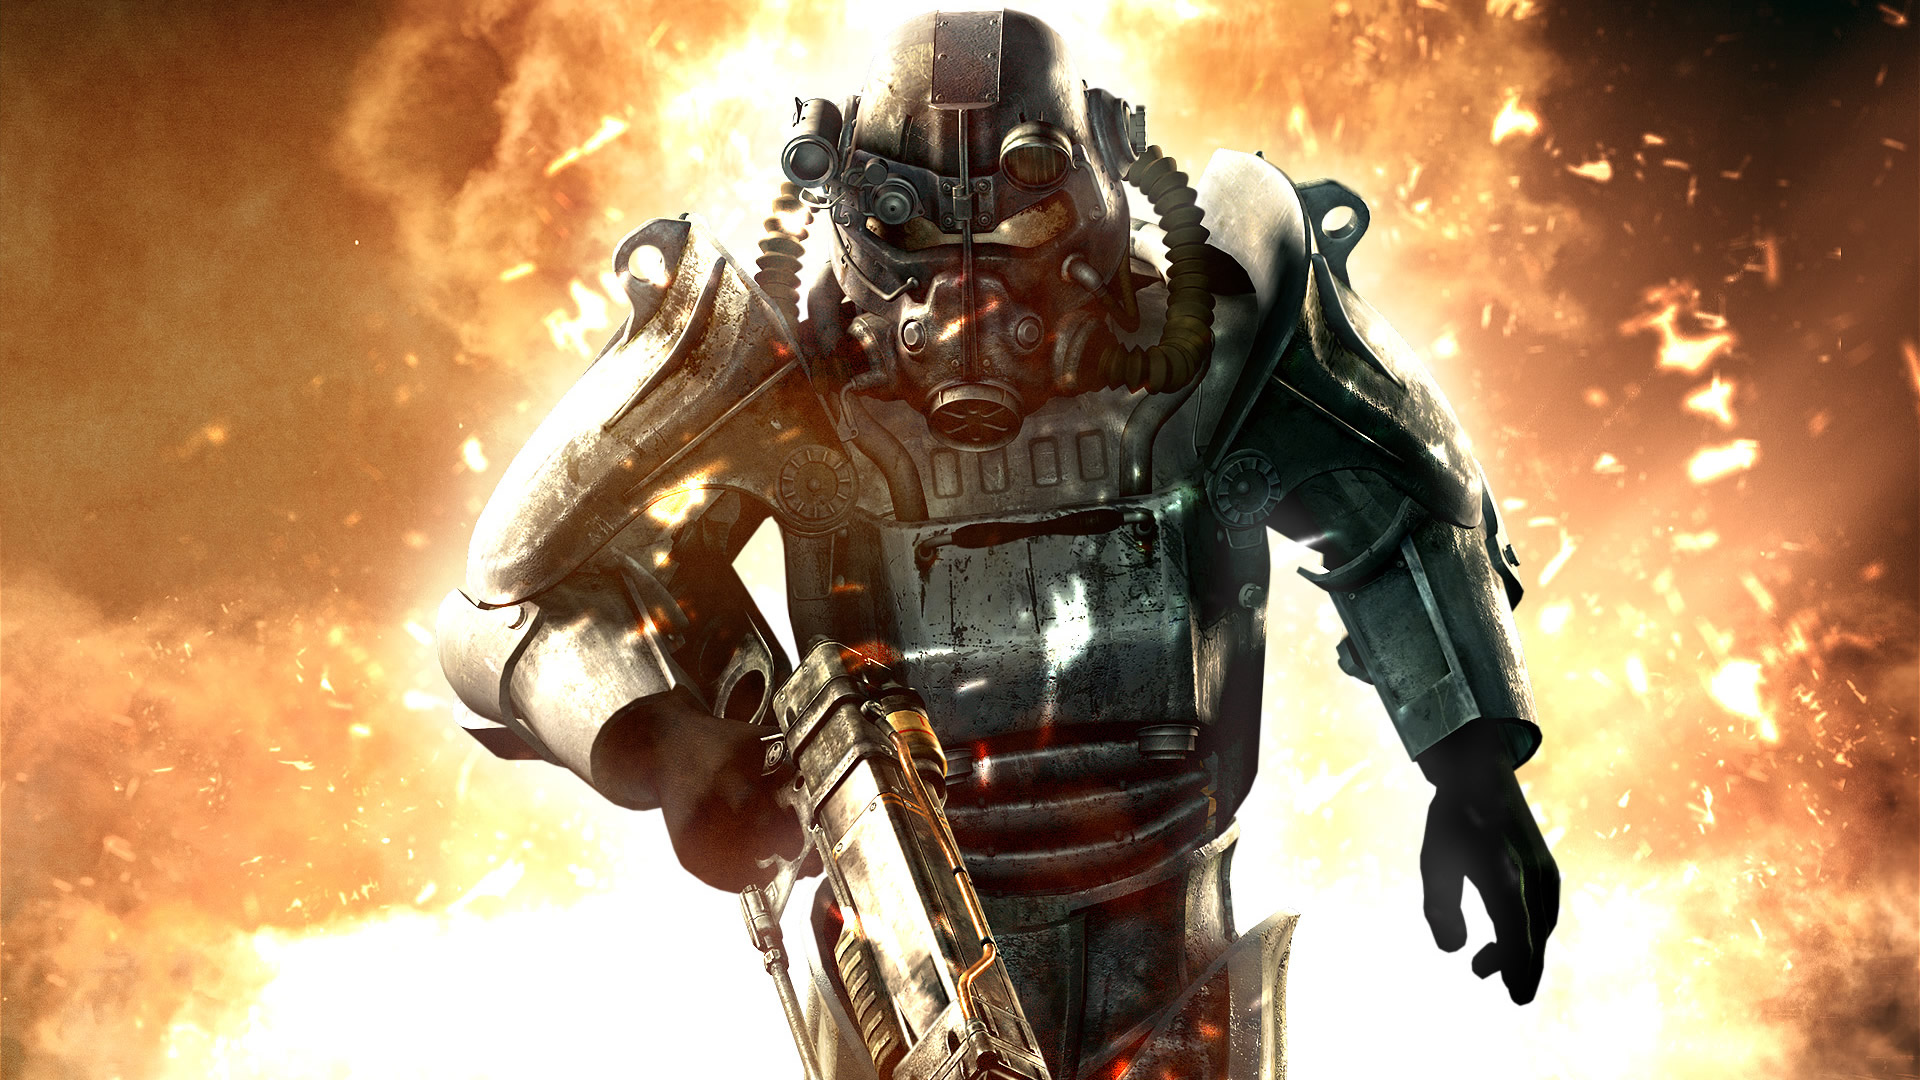 Rumor: 'Fallout 4' revealed by voice actor